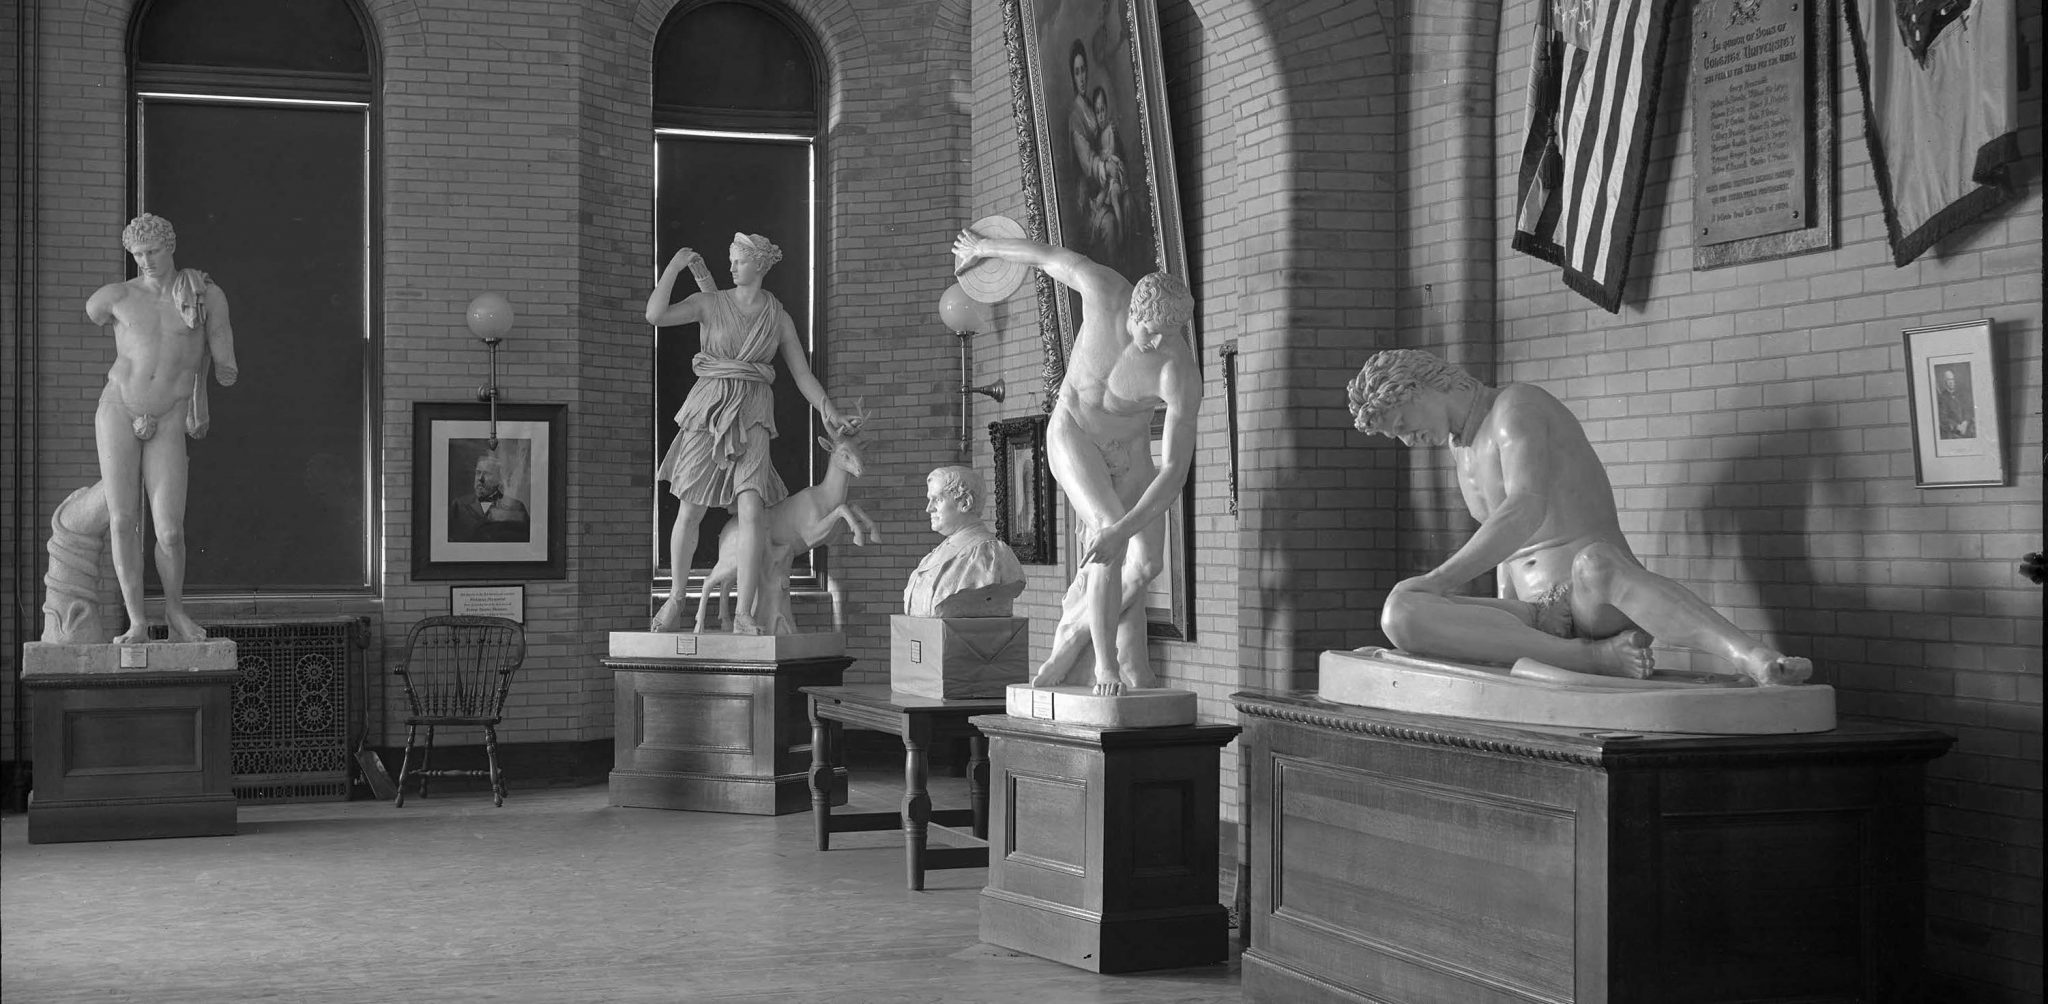 <p>Northeast corner, first floor of library with statues, including Civil War Memorial, 1904. Photo by Edward H. Stone.</p><p>Edward H. Stone Collection. Special Collections and University Archives, Colgate University Libraries.</p>